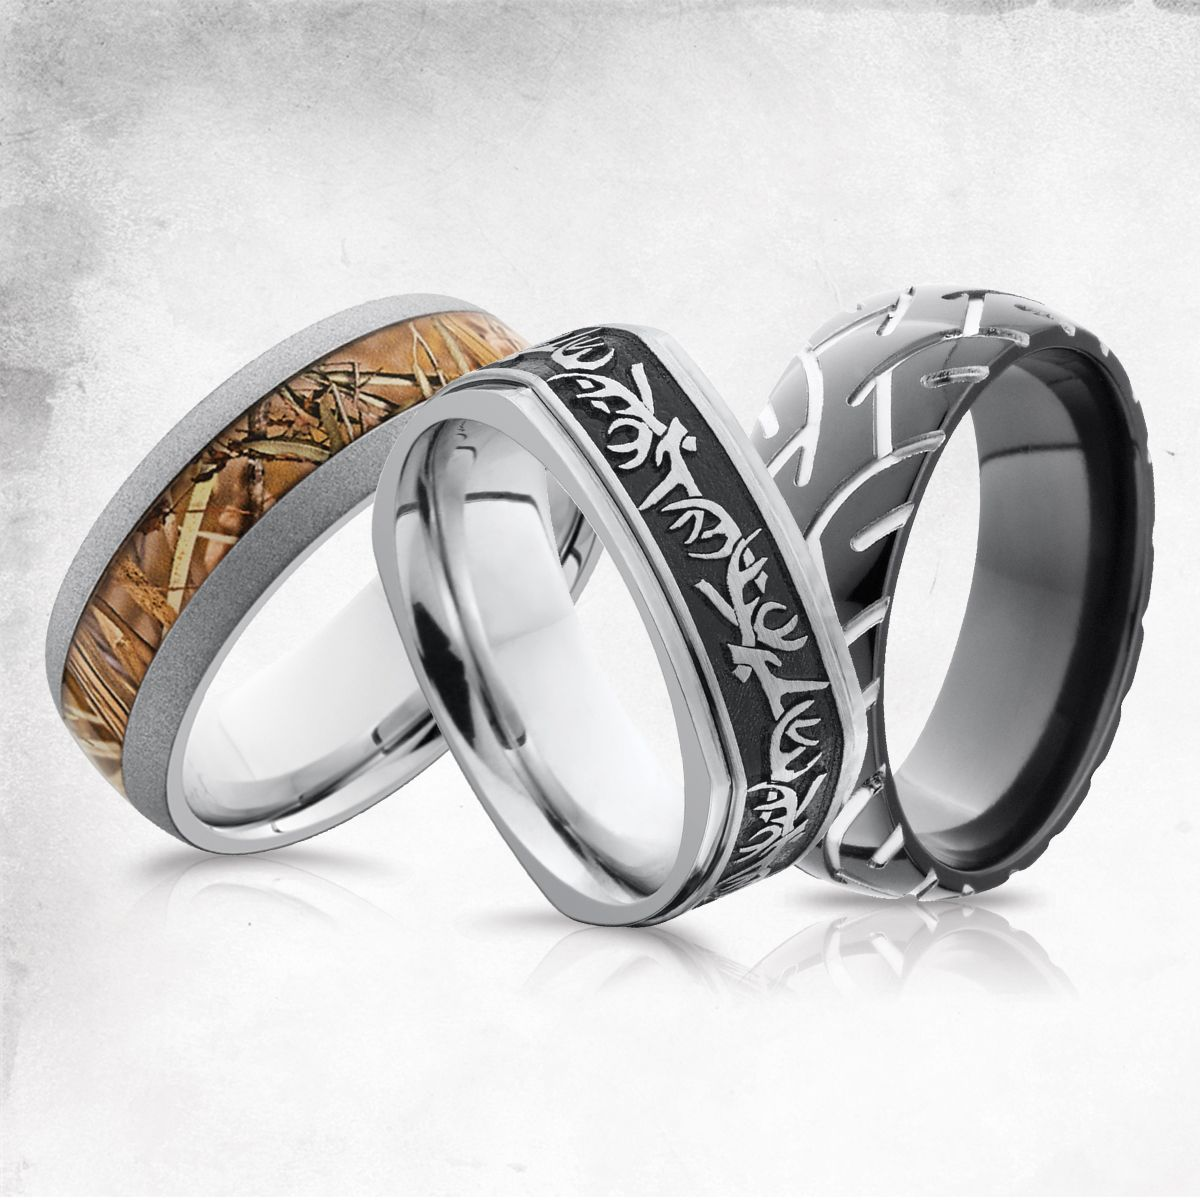 hunting wedding bands Hunting Camo and Tire Tracks Men s Wedding Bands Men s Wedding Rings